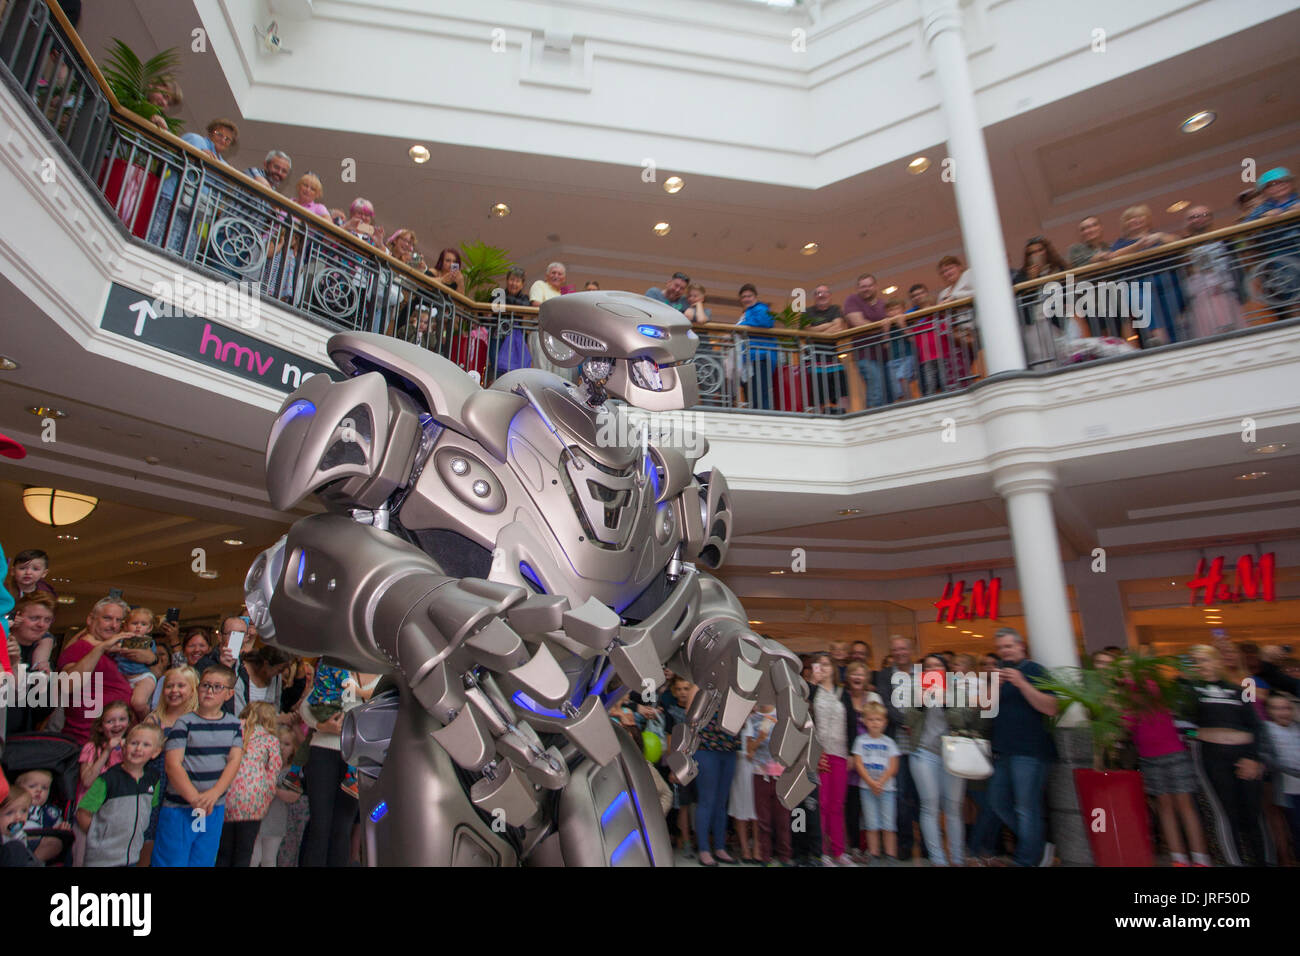 Preston, Lancashire, UK. Titan the robot, wearing an exoskeleton suit, wows the crowds at St George's Centre. Titan is the stage name of a partially-mechanised costume created by Cyberstein Robots Ltd. The robot costume is approximately 2.4 metres (7.9 ft) tall and 60 kg and increases to 350 kg including the cart it rides on and onboard equipment. The face resembles a skull, and some have even compared it to a Transformer. It was designed by Nik Fielding, who runs Cyberstein from Newquay, Cornwall, England. - Stock Image